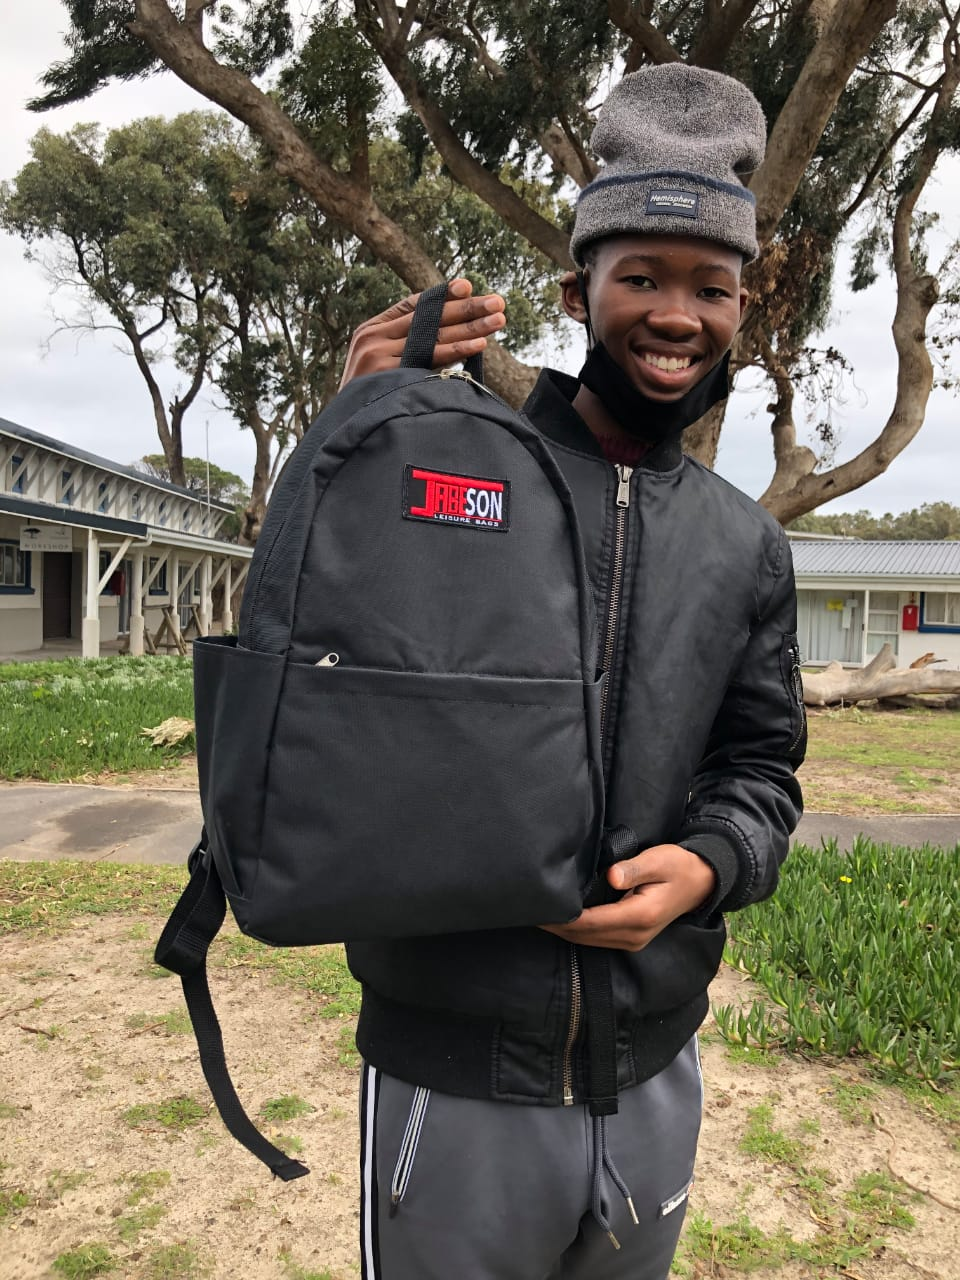 African Boy holding a bag smiling